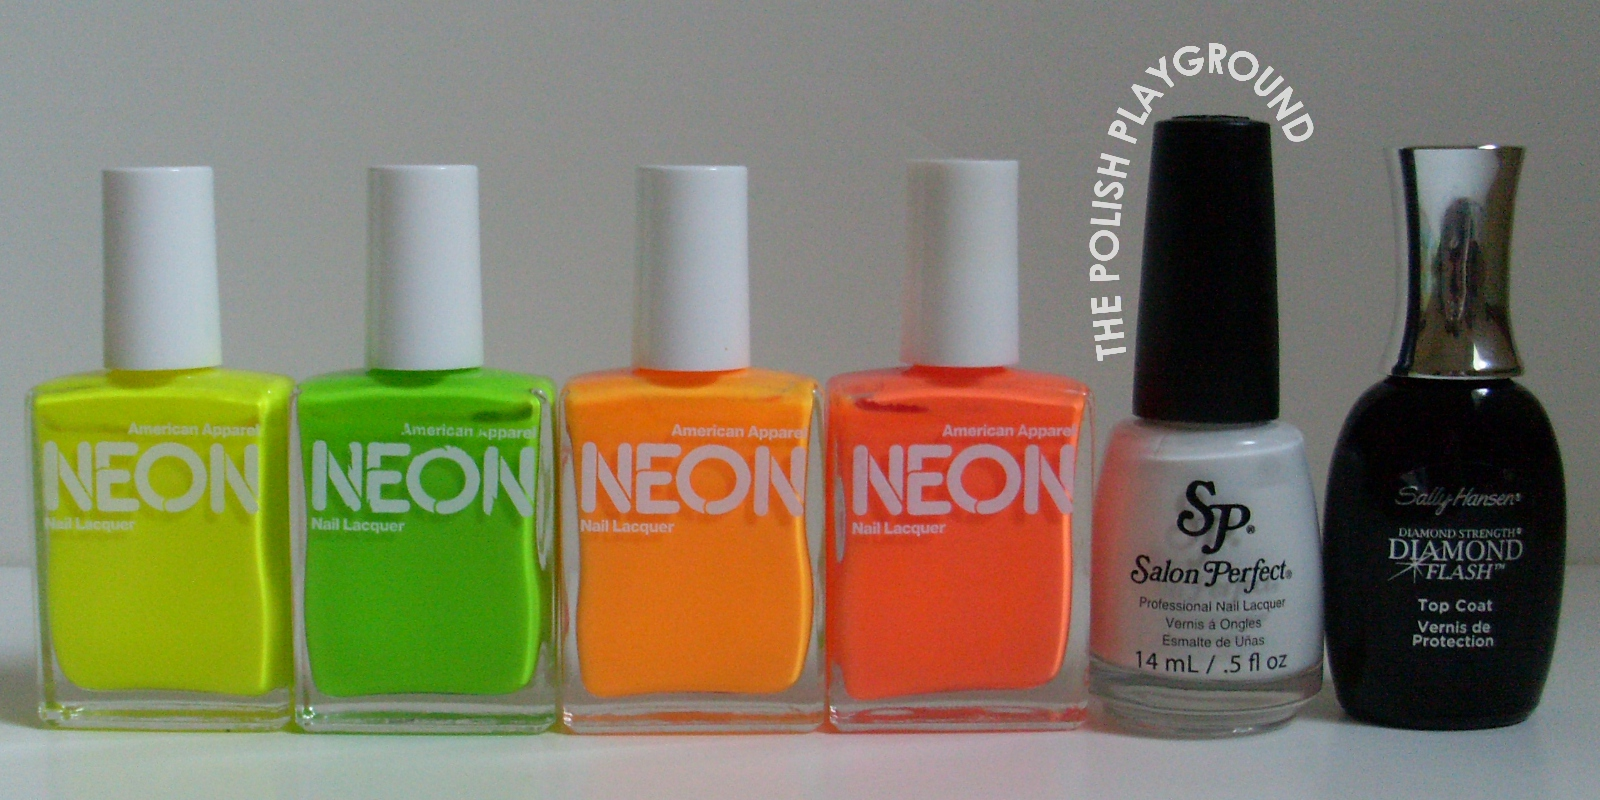 American Apparel, Salon Perfect, Sally Hansen